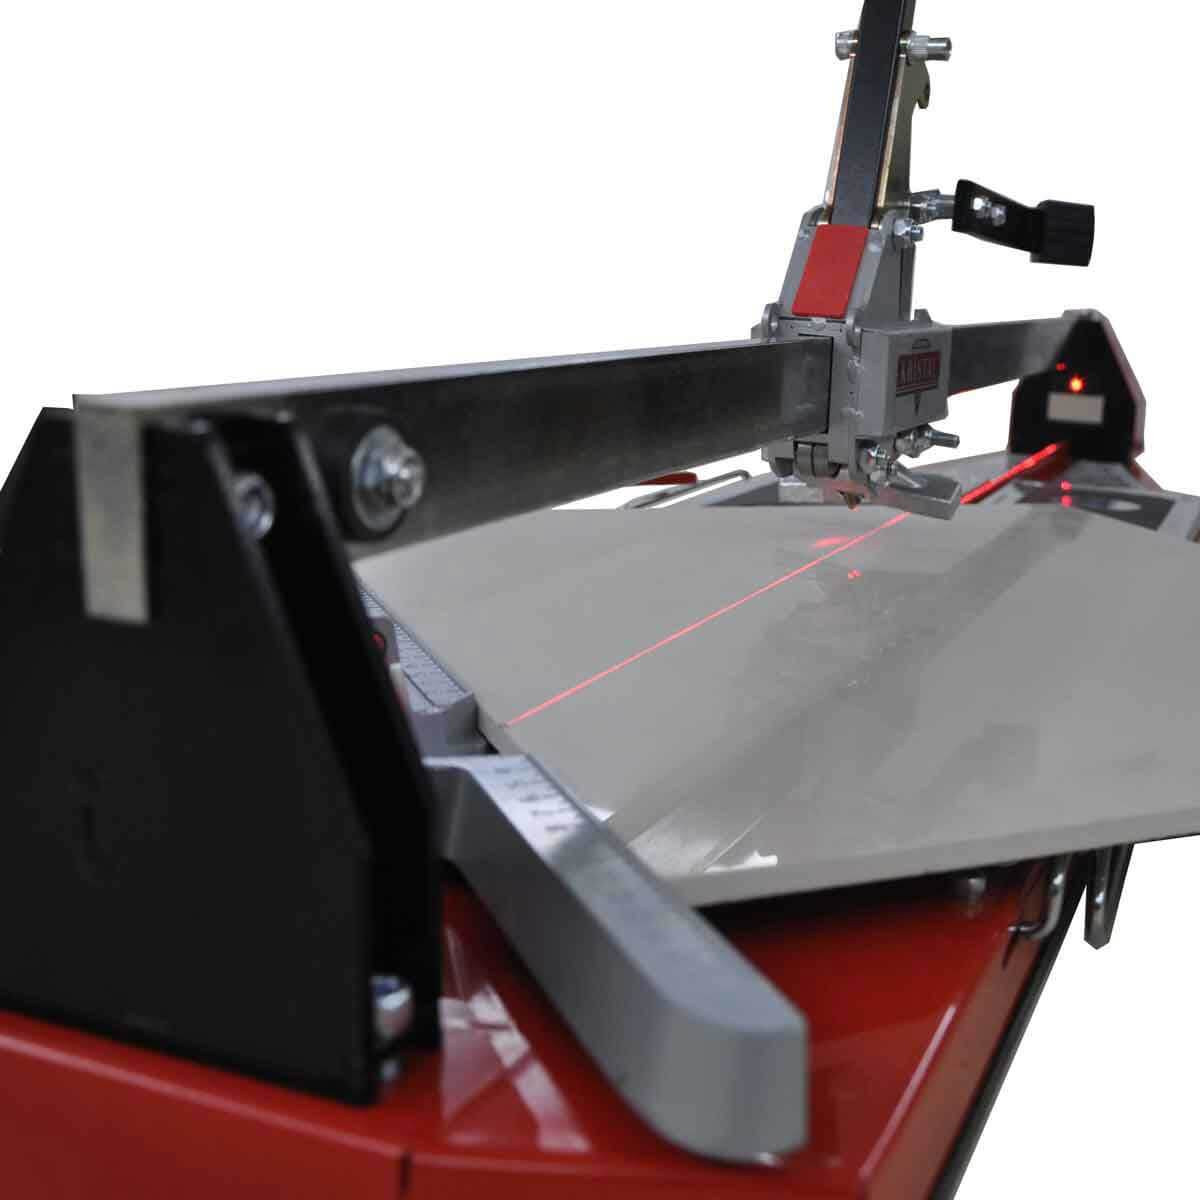 Giga-cut tile cutter with laser